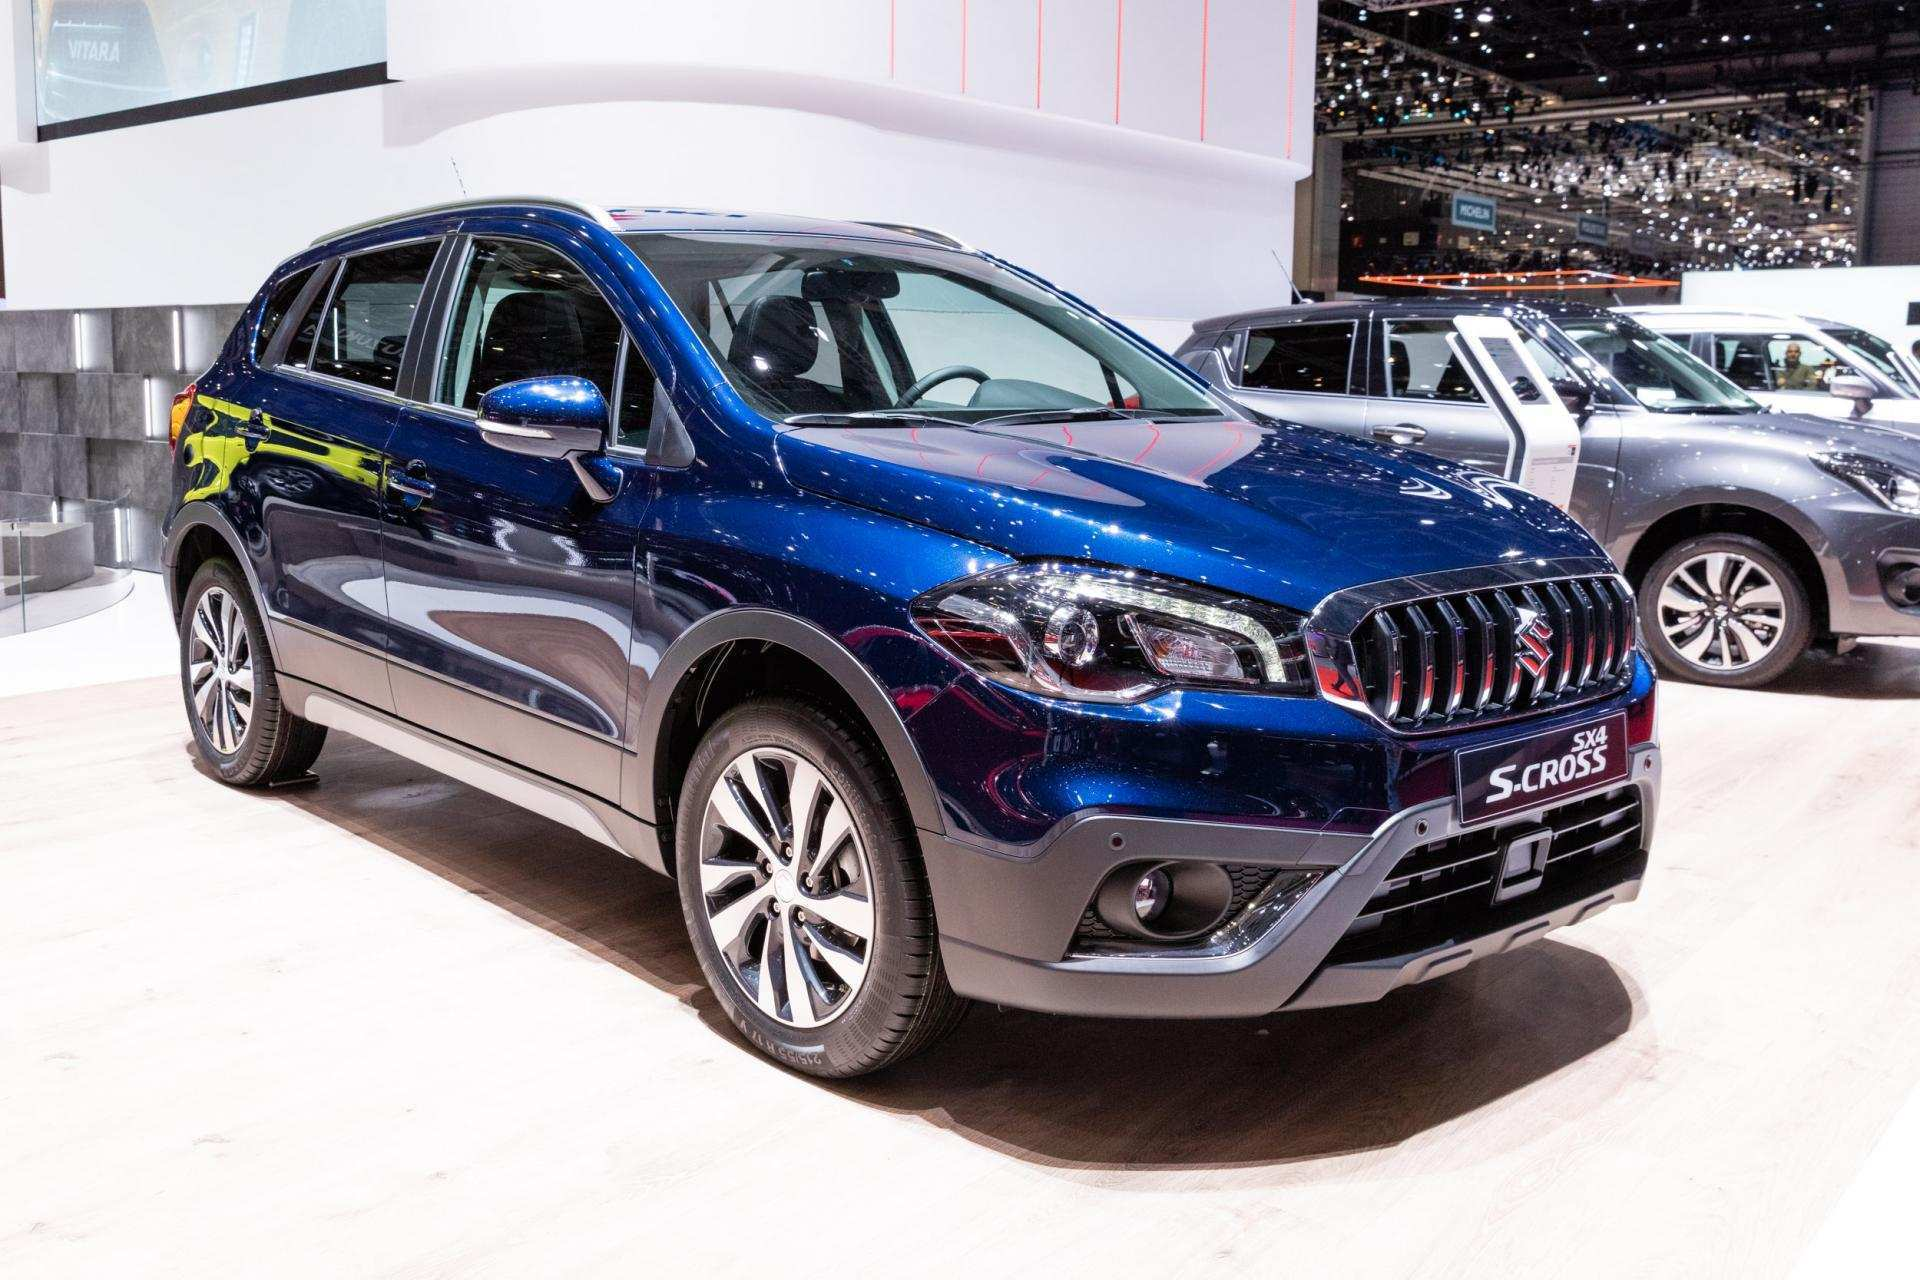 41 All New 2019 Suzuki Sx4 Performance